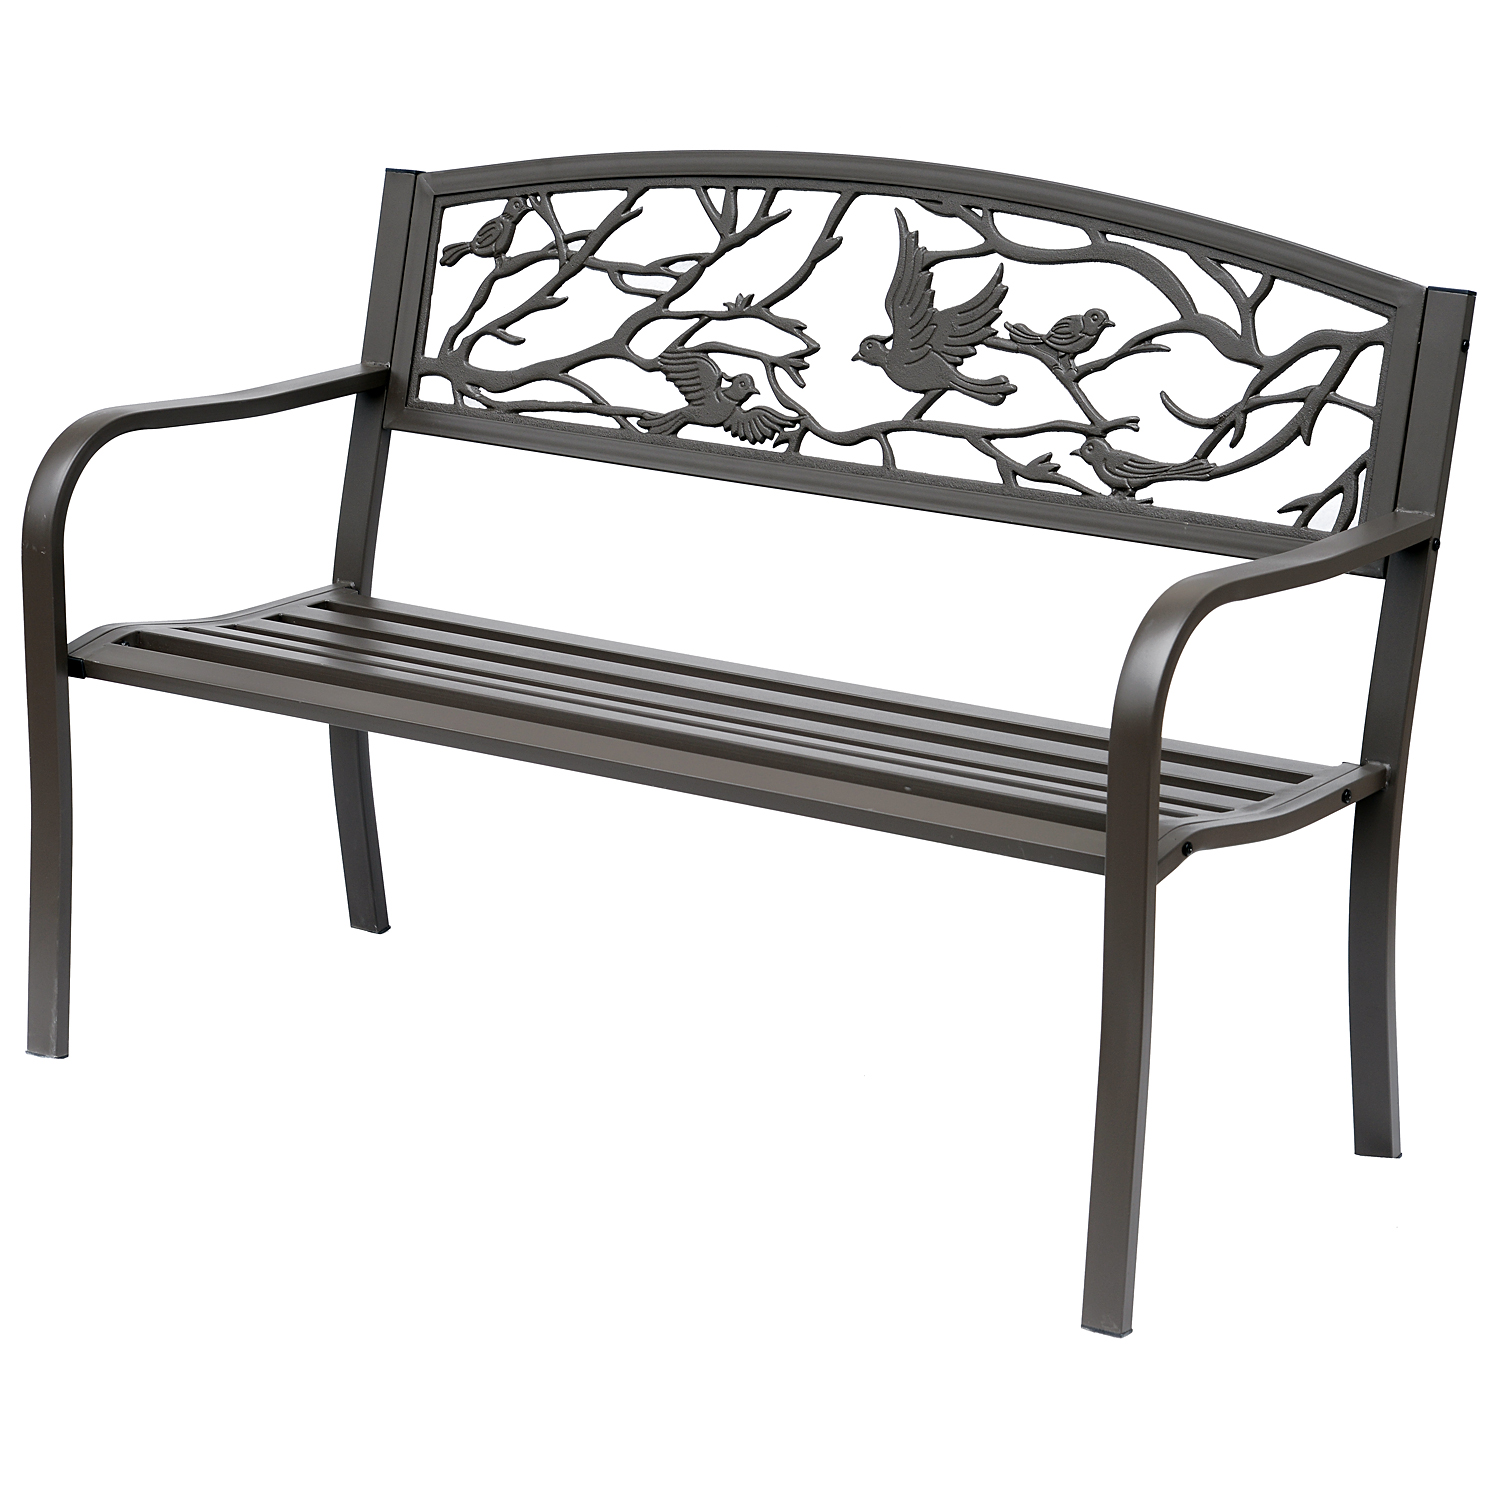 Banc 3 places de jardin style rural chic